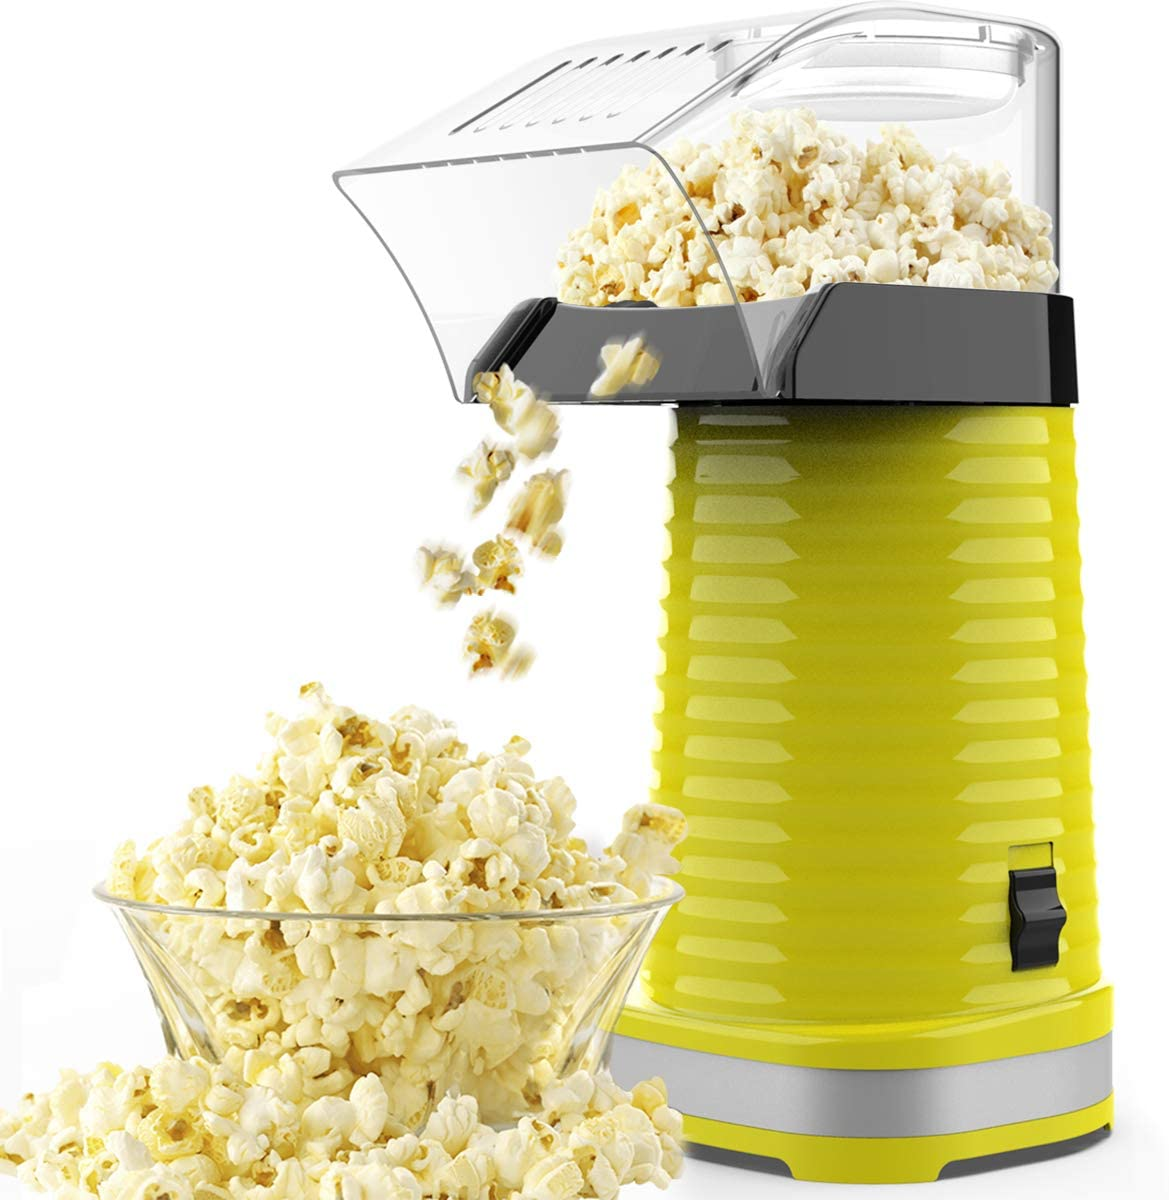 SLENPET Hot Air Popcorn Machine, 1200W Electric Popcorn Maker, ETL Certified, BPA-Free, No Oil Need, 3 Minutes Fast Popcorn Popper with Measuring Cup and Top Lid for Home, Family, Party (Yellow)